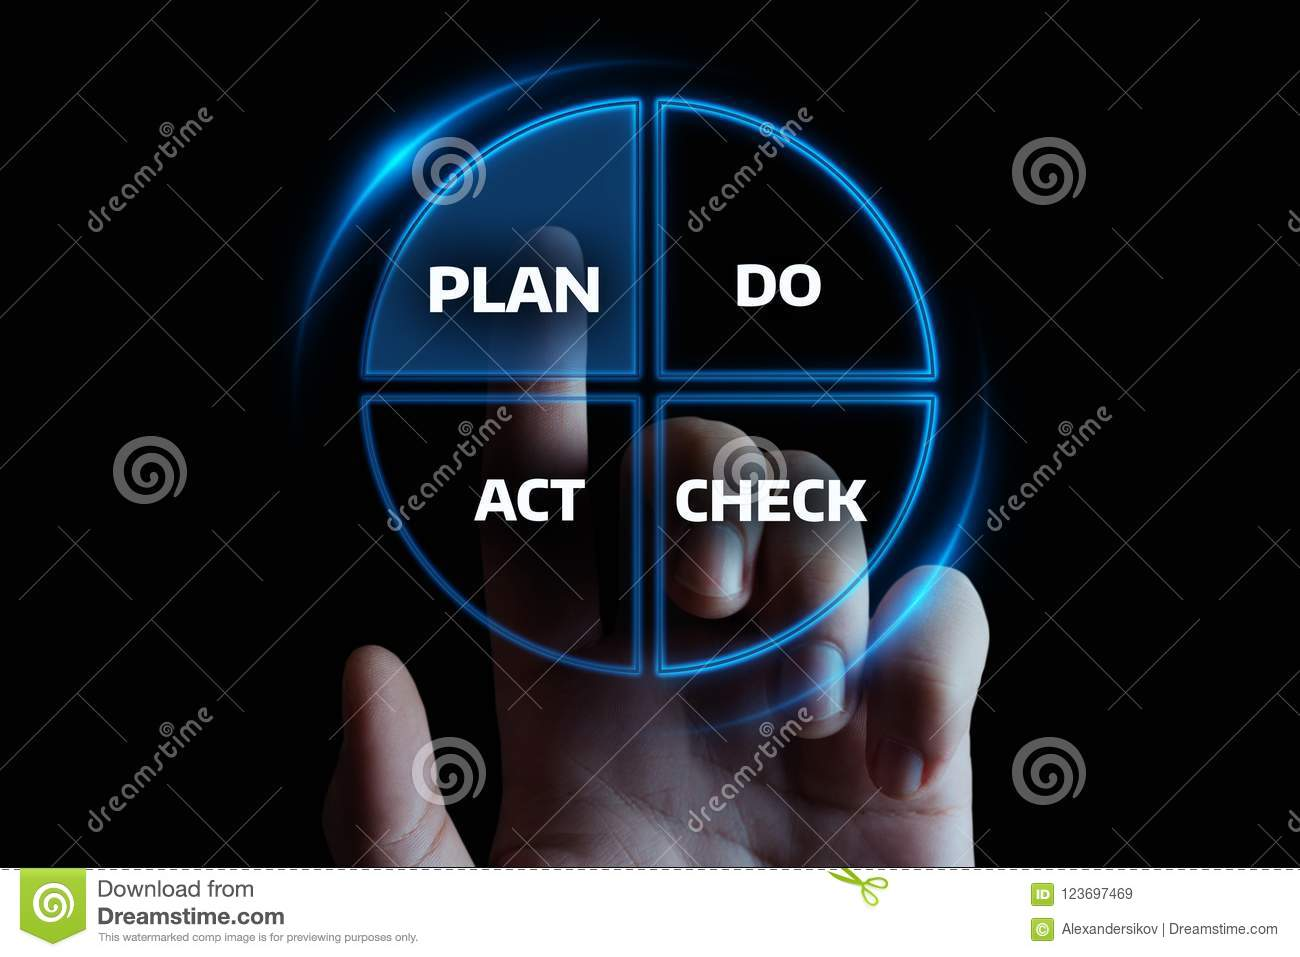 PDCA Plan Do Check Act Business Action Strategy Goal Success concept